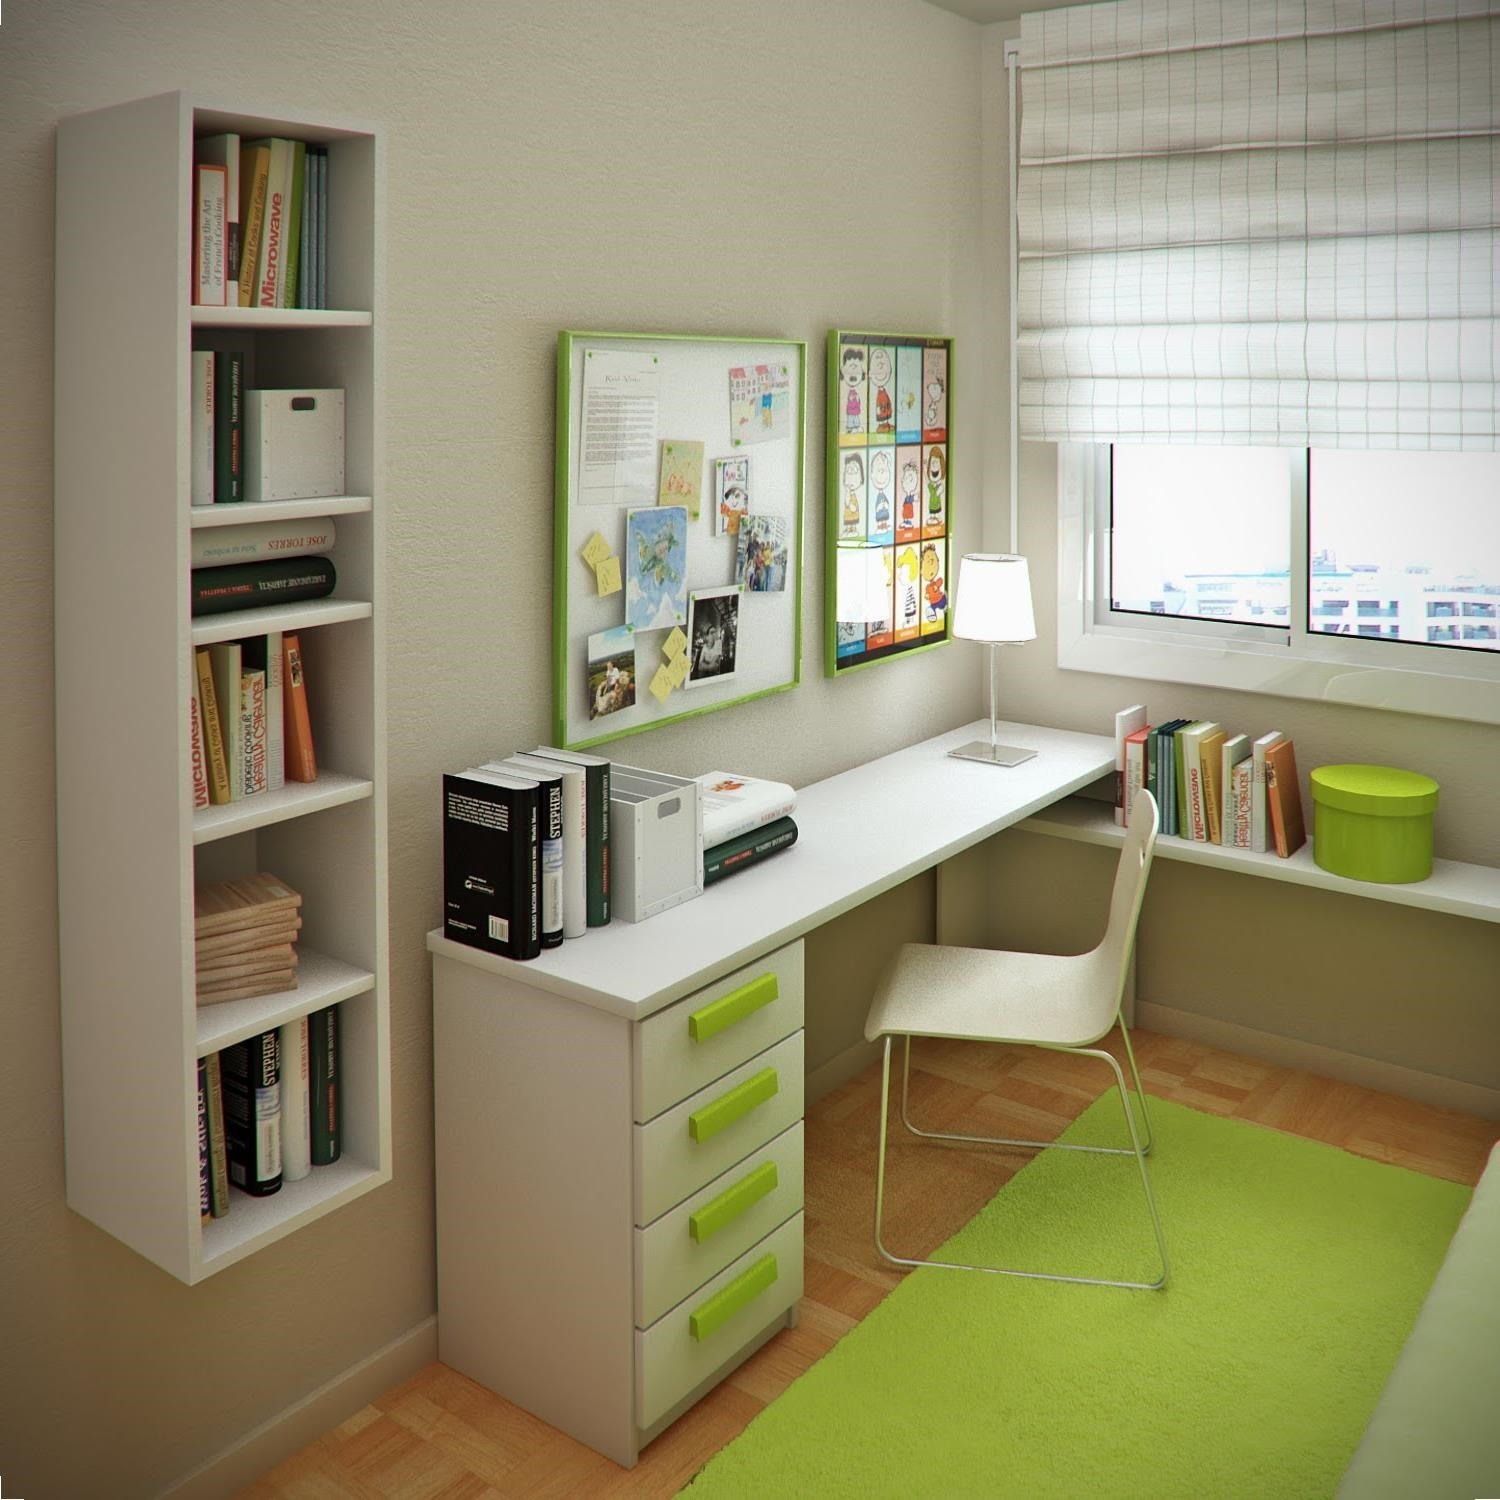 Modern Study Table With Bookshelf 15001500 Little Office For Desk 10